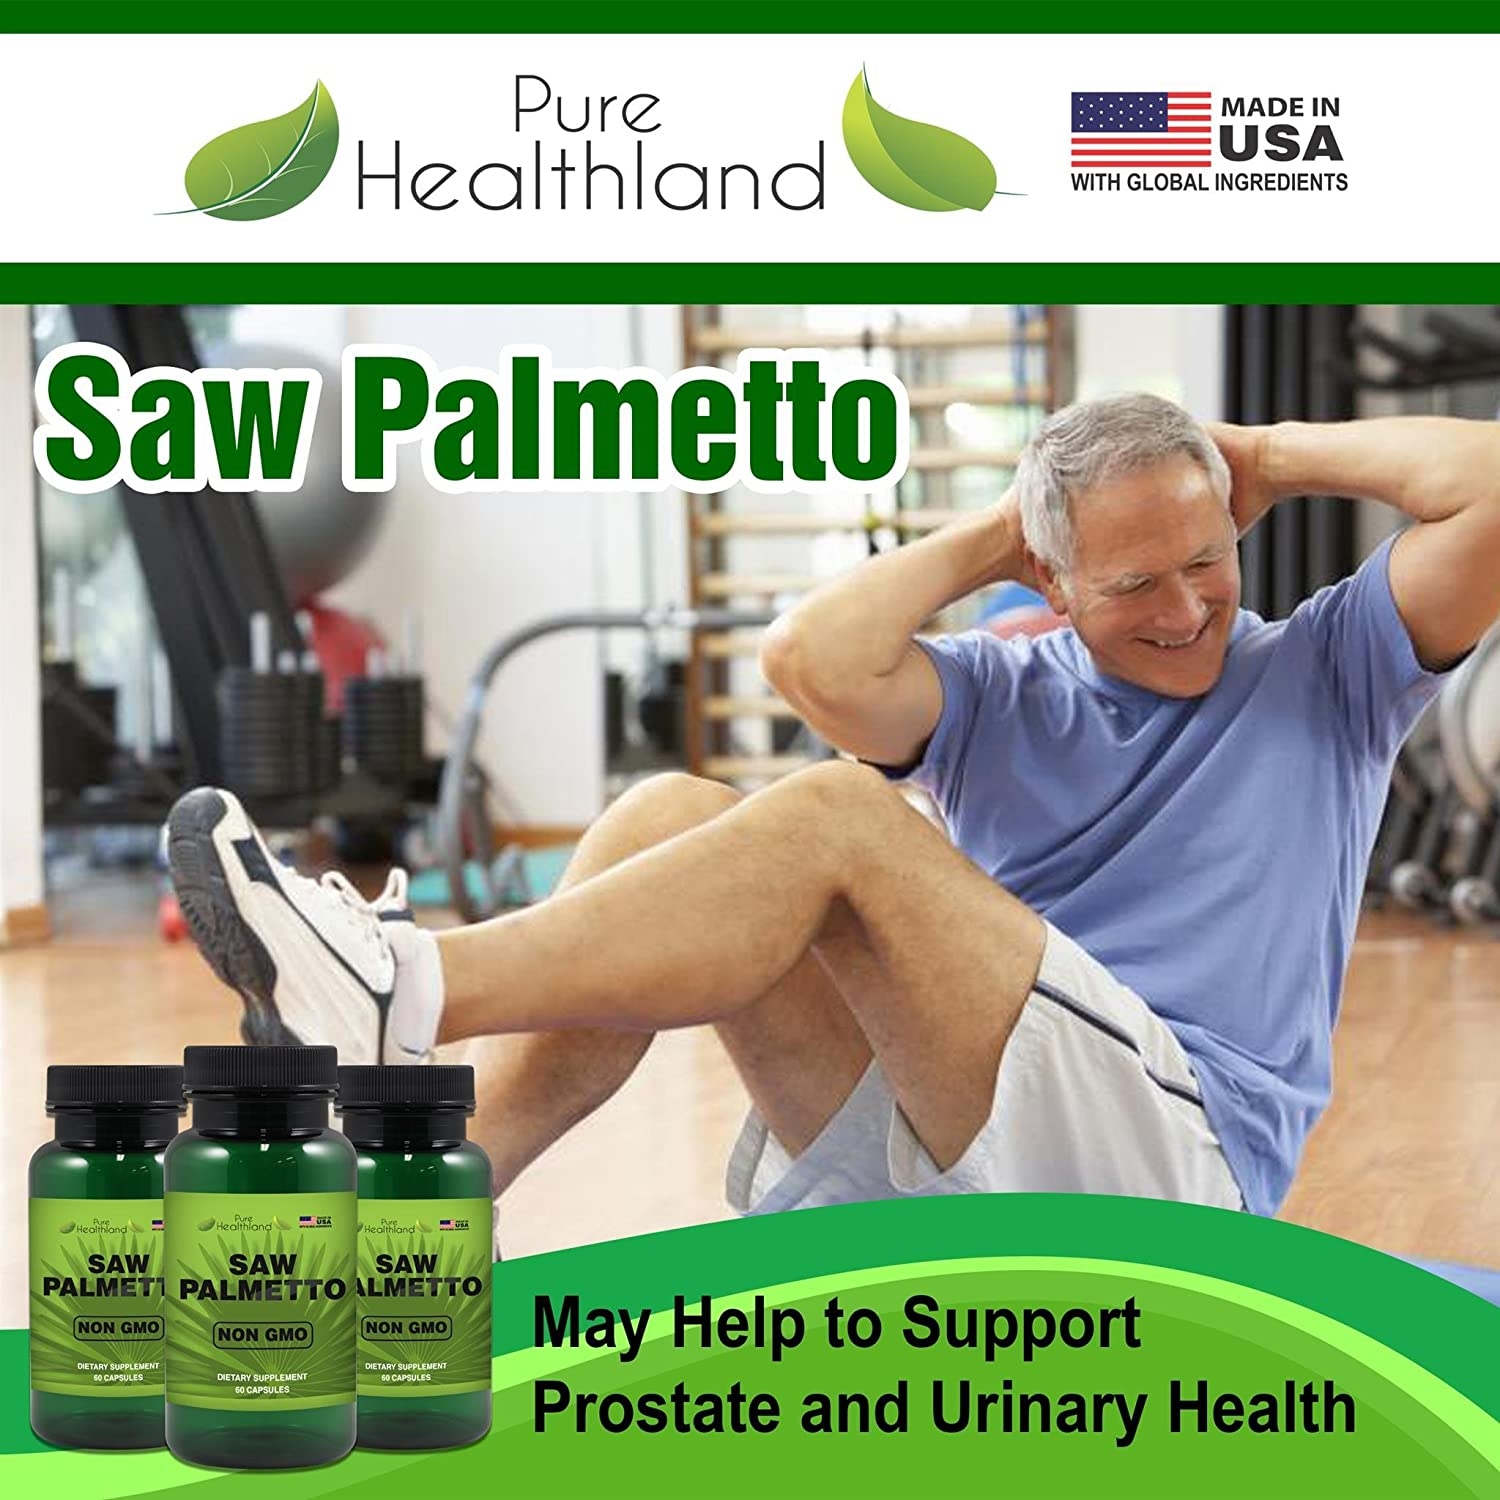 Amazon.com  Reduce Frequent Urination! Non-GMO Saw Palmetto Supplement  Capsules Support Men s Prostate Health - High Quality   Potency 500mg  Prostate ... 552b6b7b462